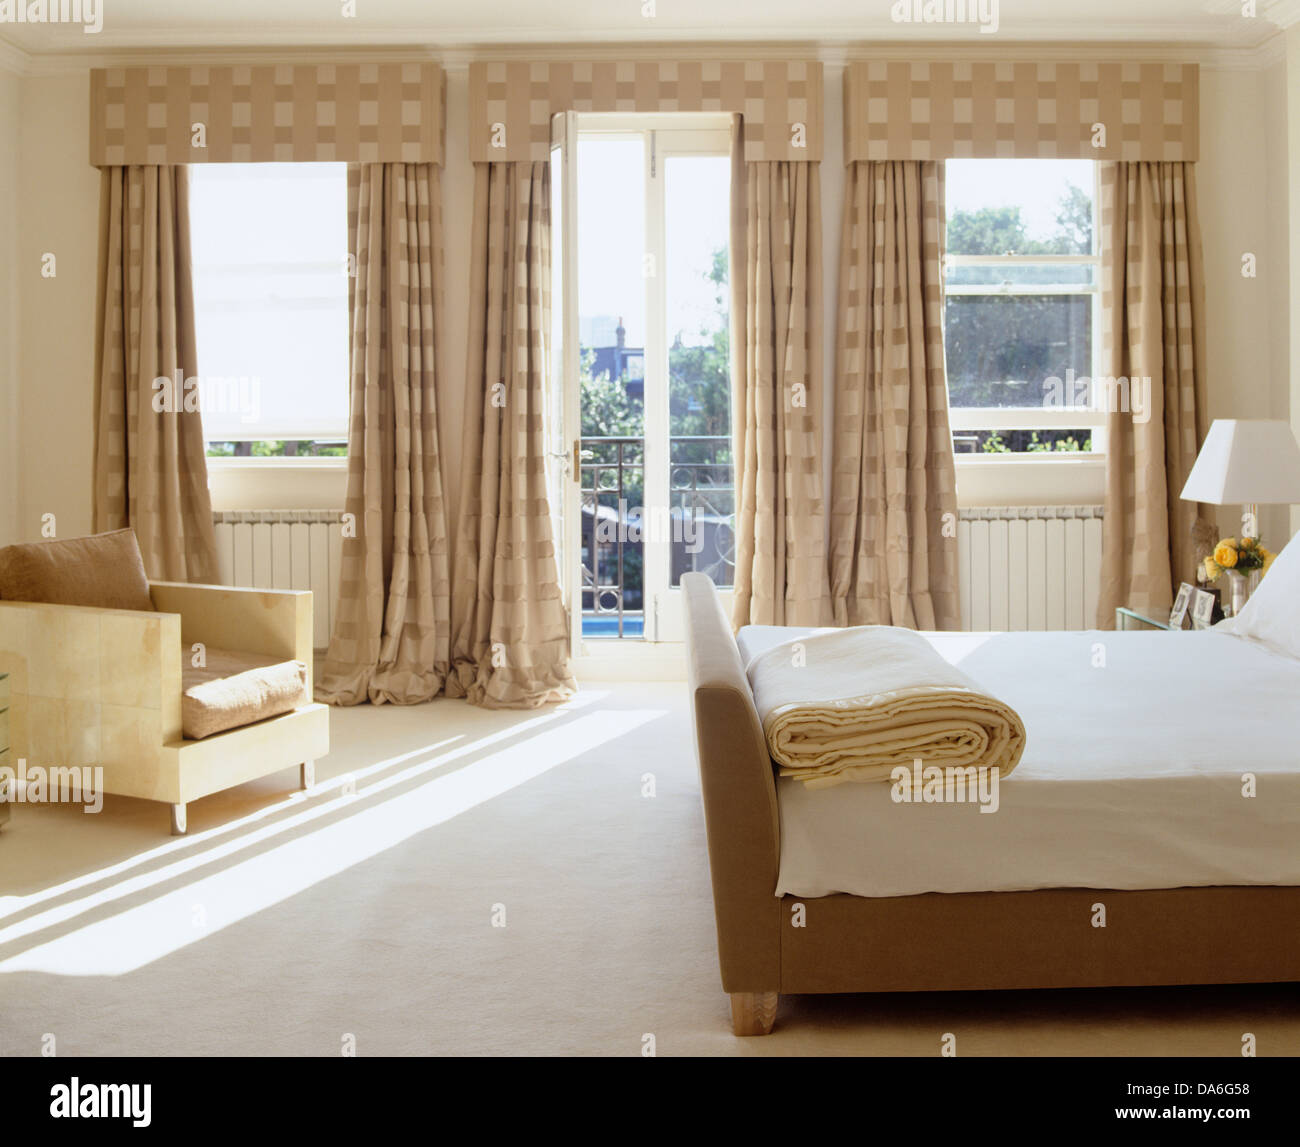 Double Bed And White Carpet In Contemporary Bedroom With